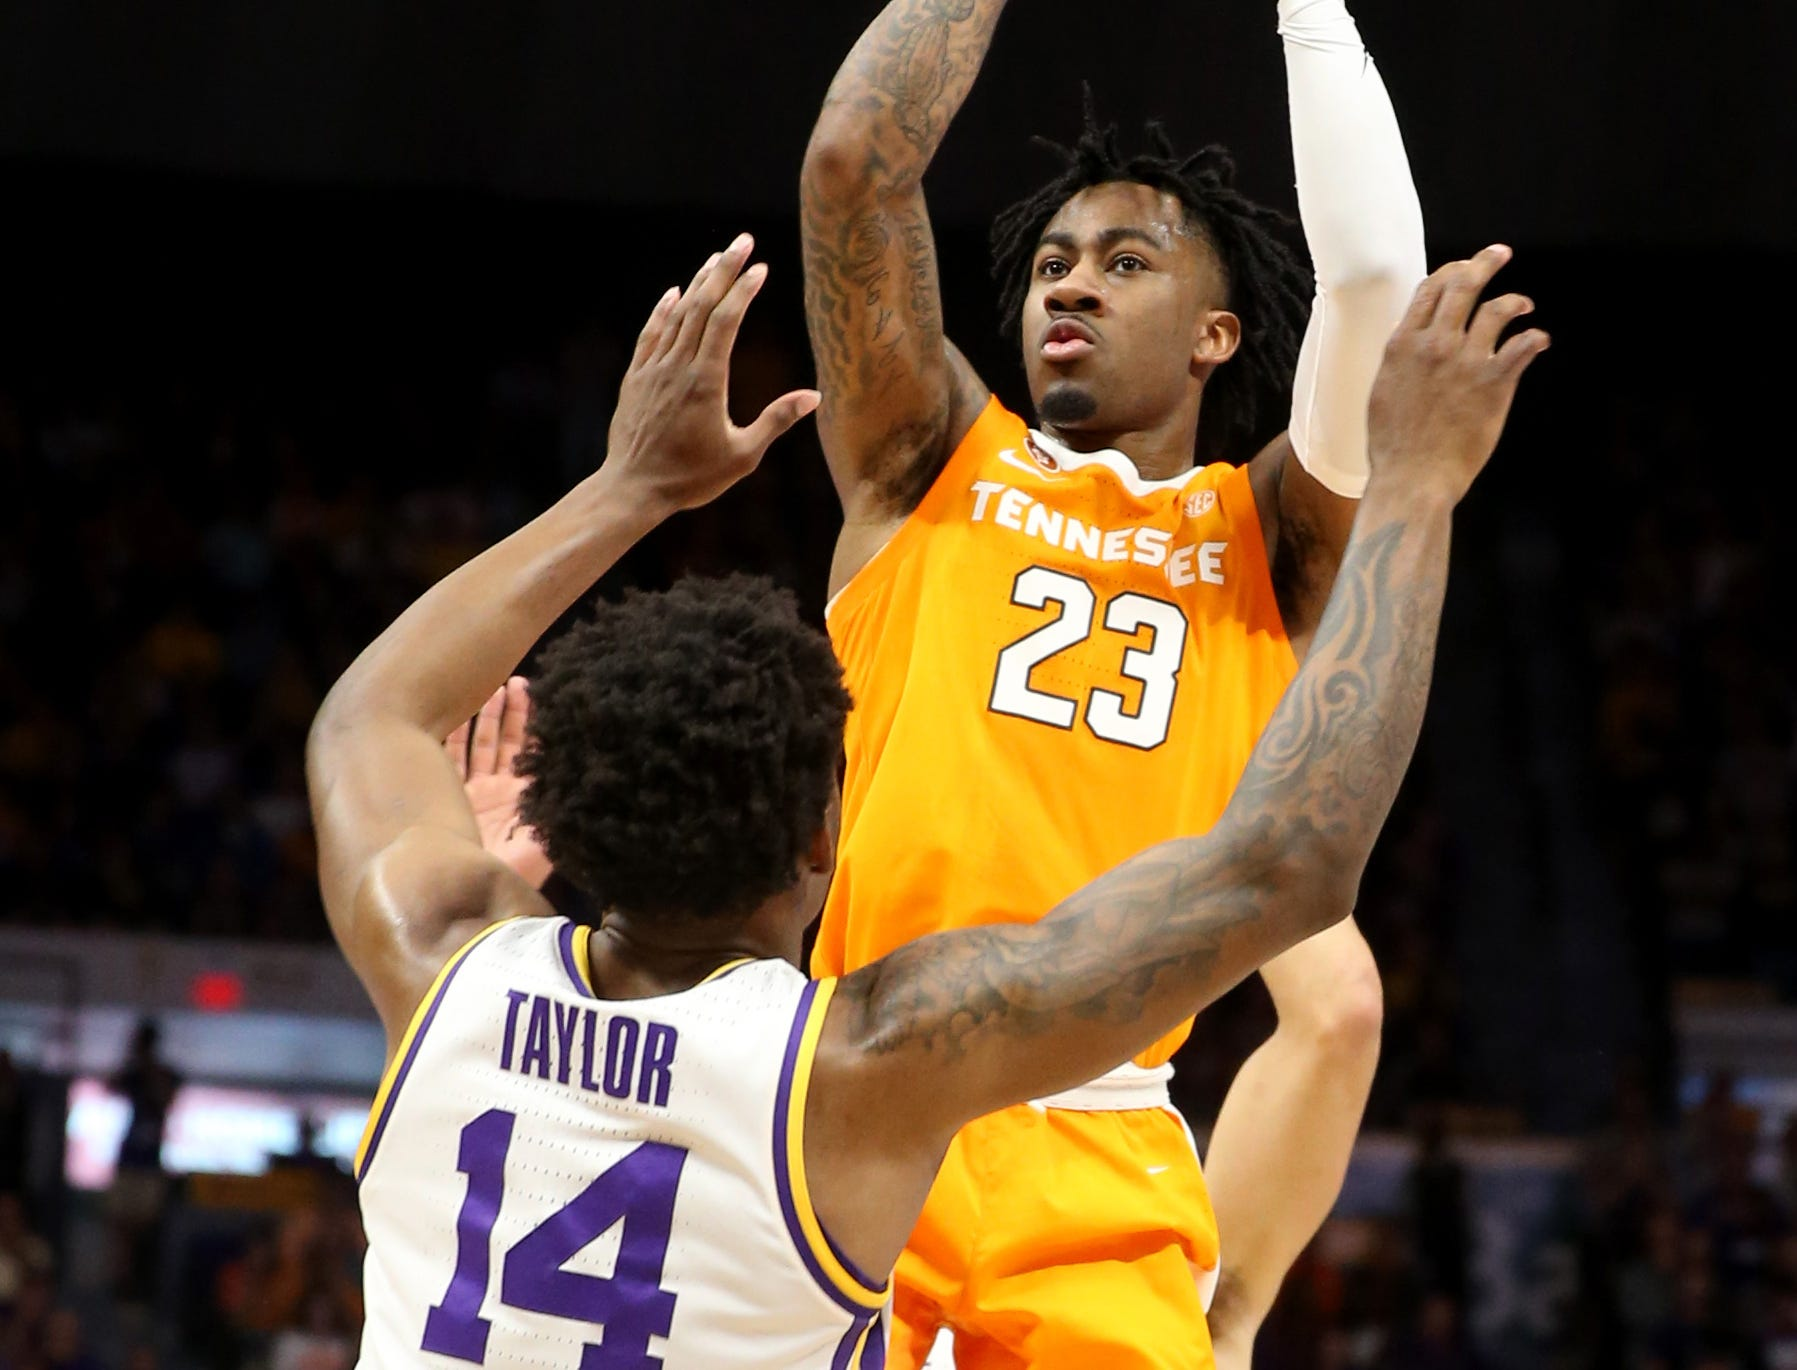 Feb 23, 2019; Baton Rouge, LA, USA; Tennessee Volunteers guard Jordan Bowden (23) is defended by LSU Tigers guard Marlon Taylor (14) in the first half at the Maravich Assembly Center. Mandatory Credit: Chuck Cook-USA TODAY Sports